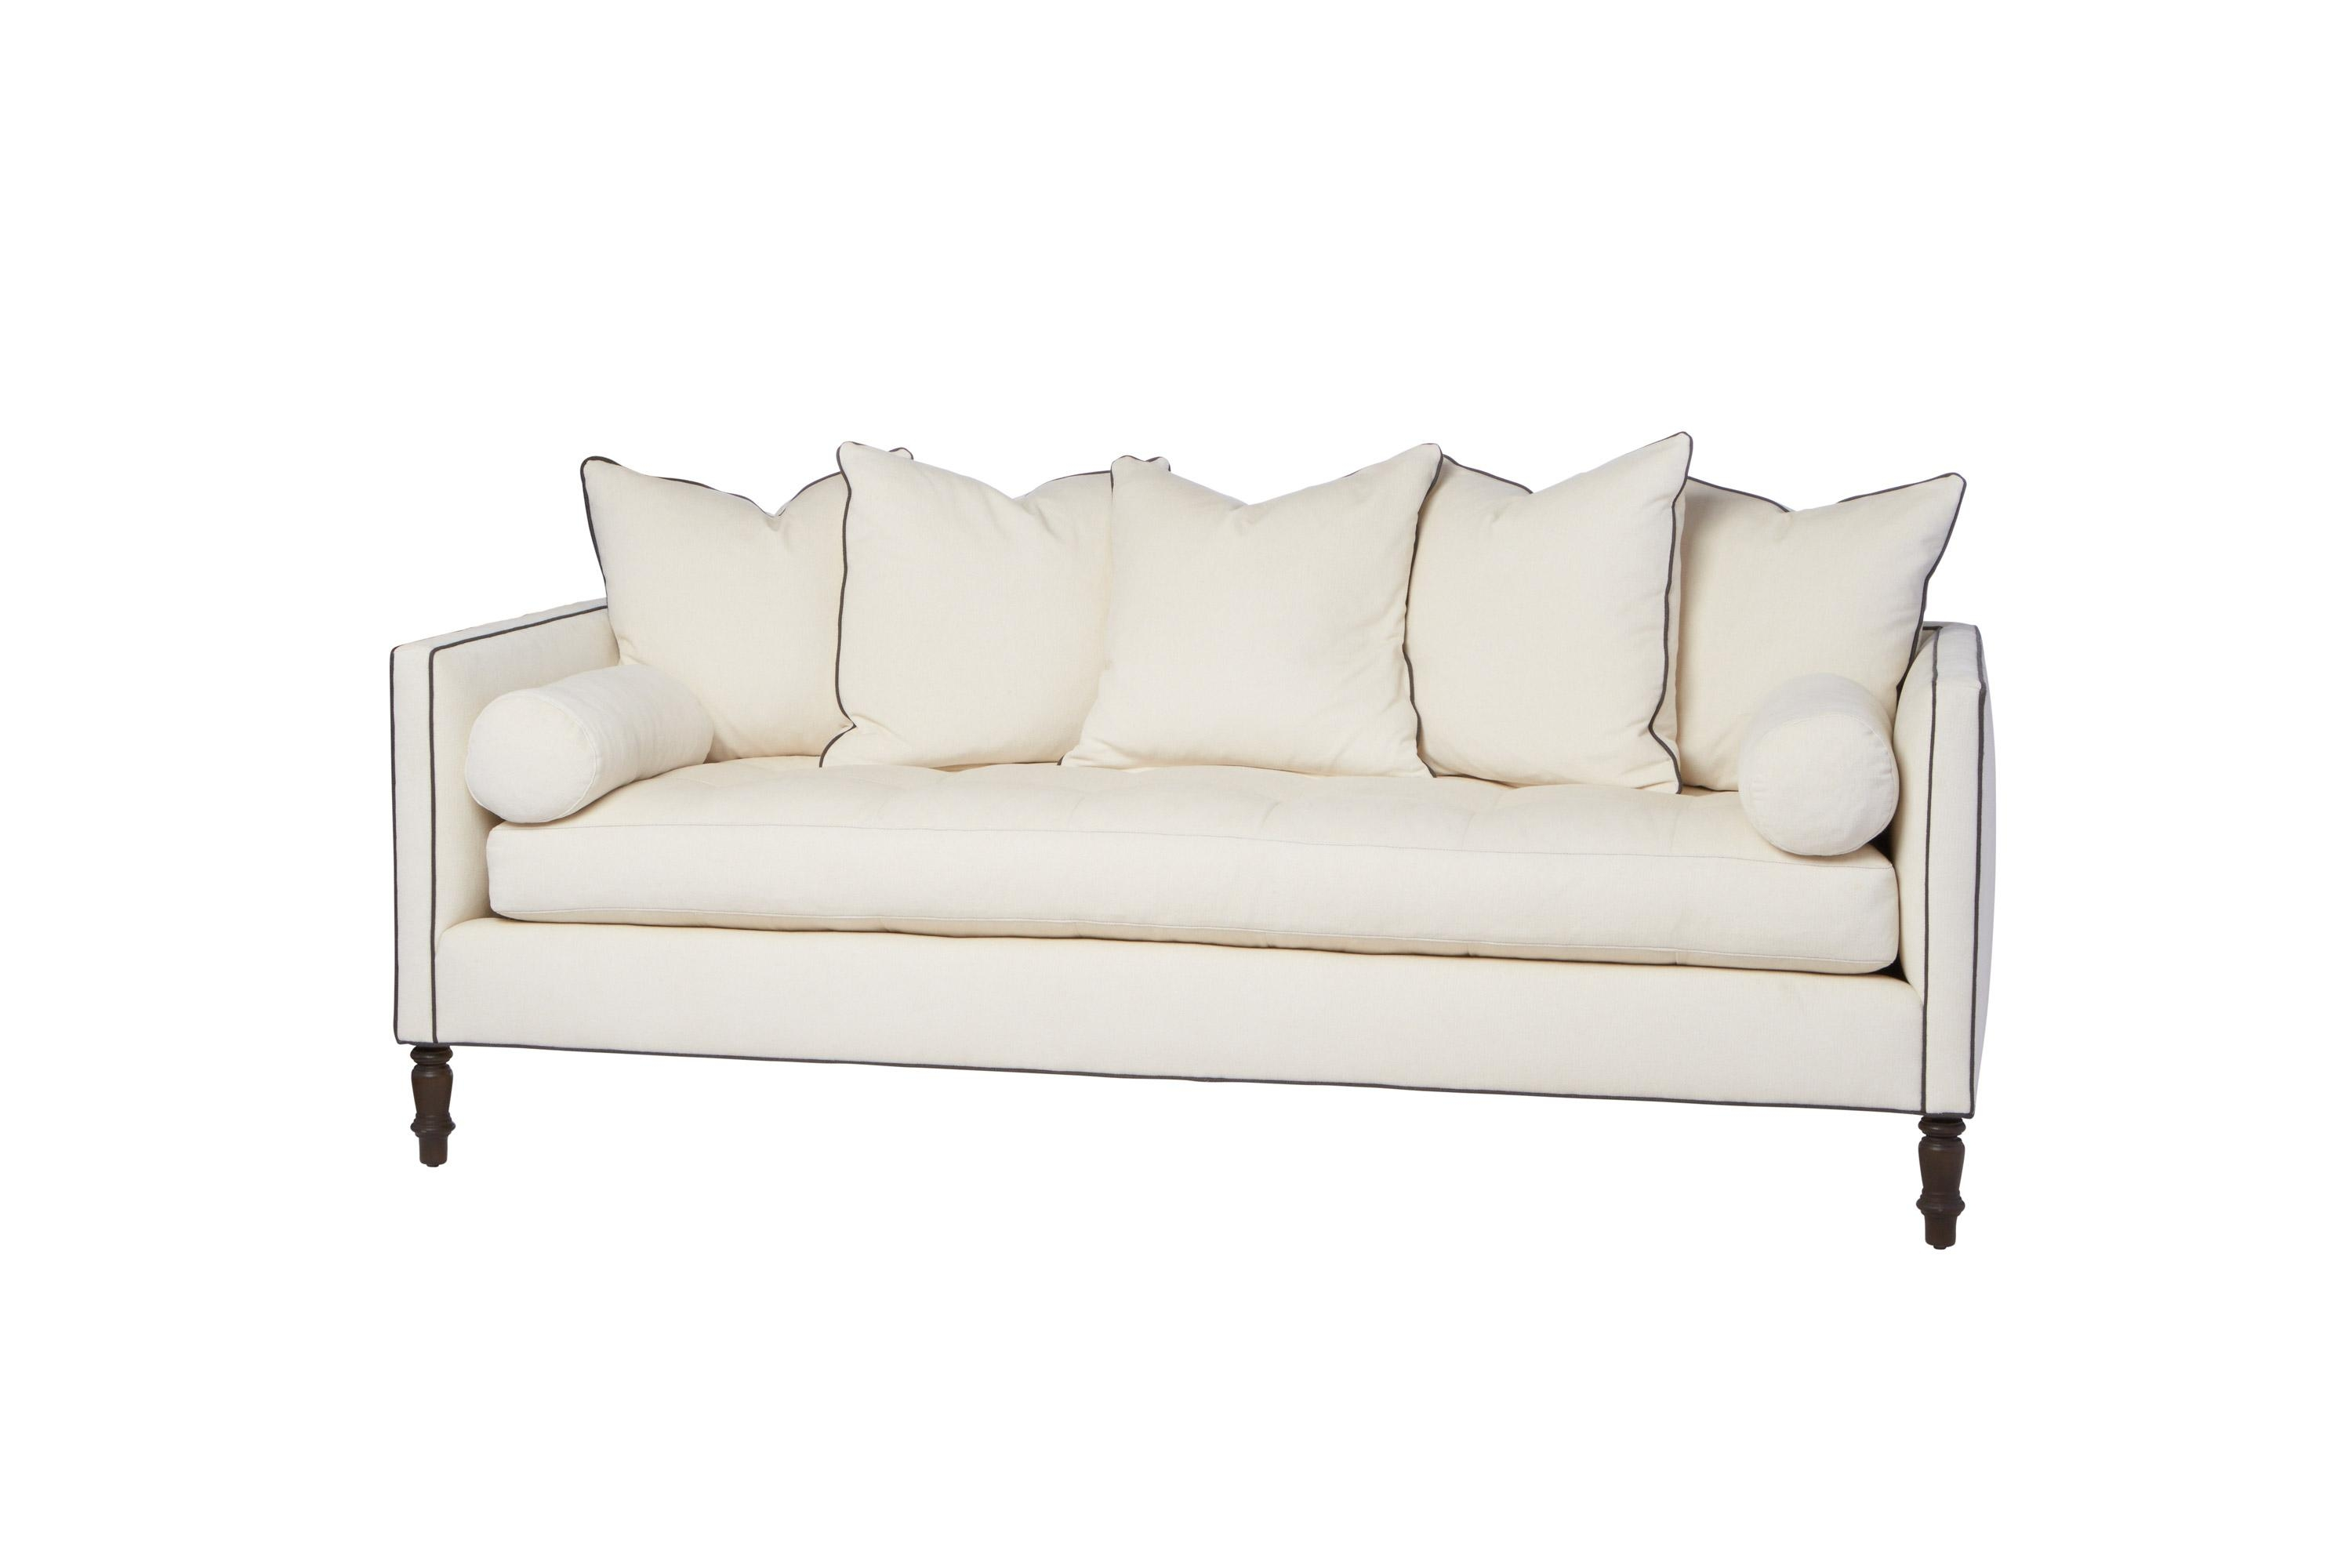 cisco brothers sofa reviews harper by simmons upholstery 20 best collection of sofas ideas